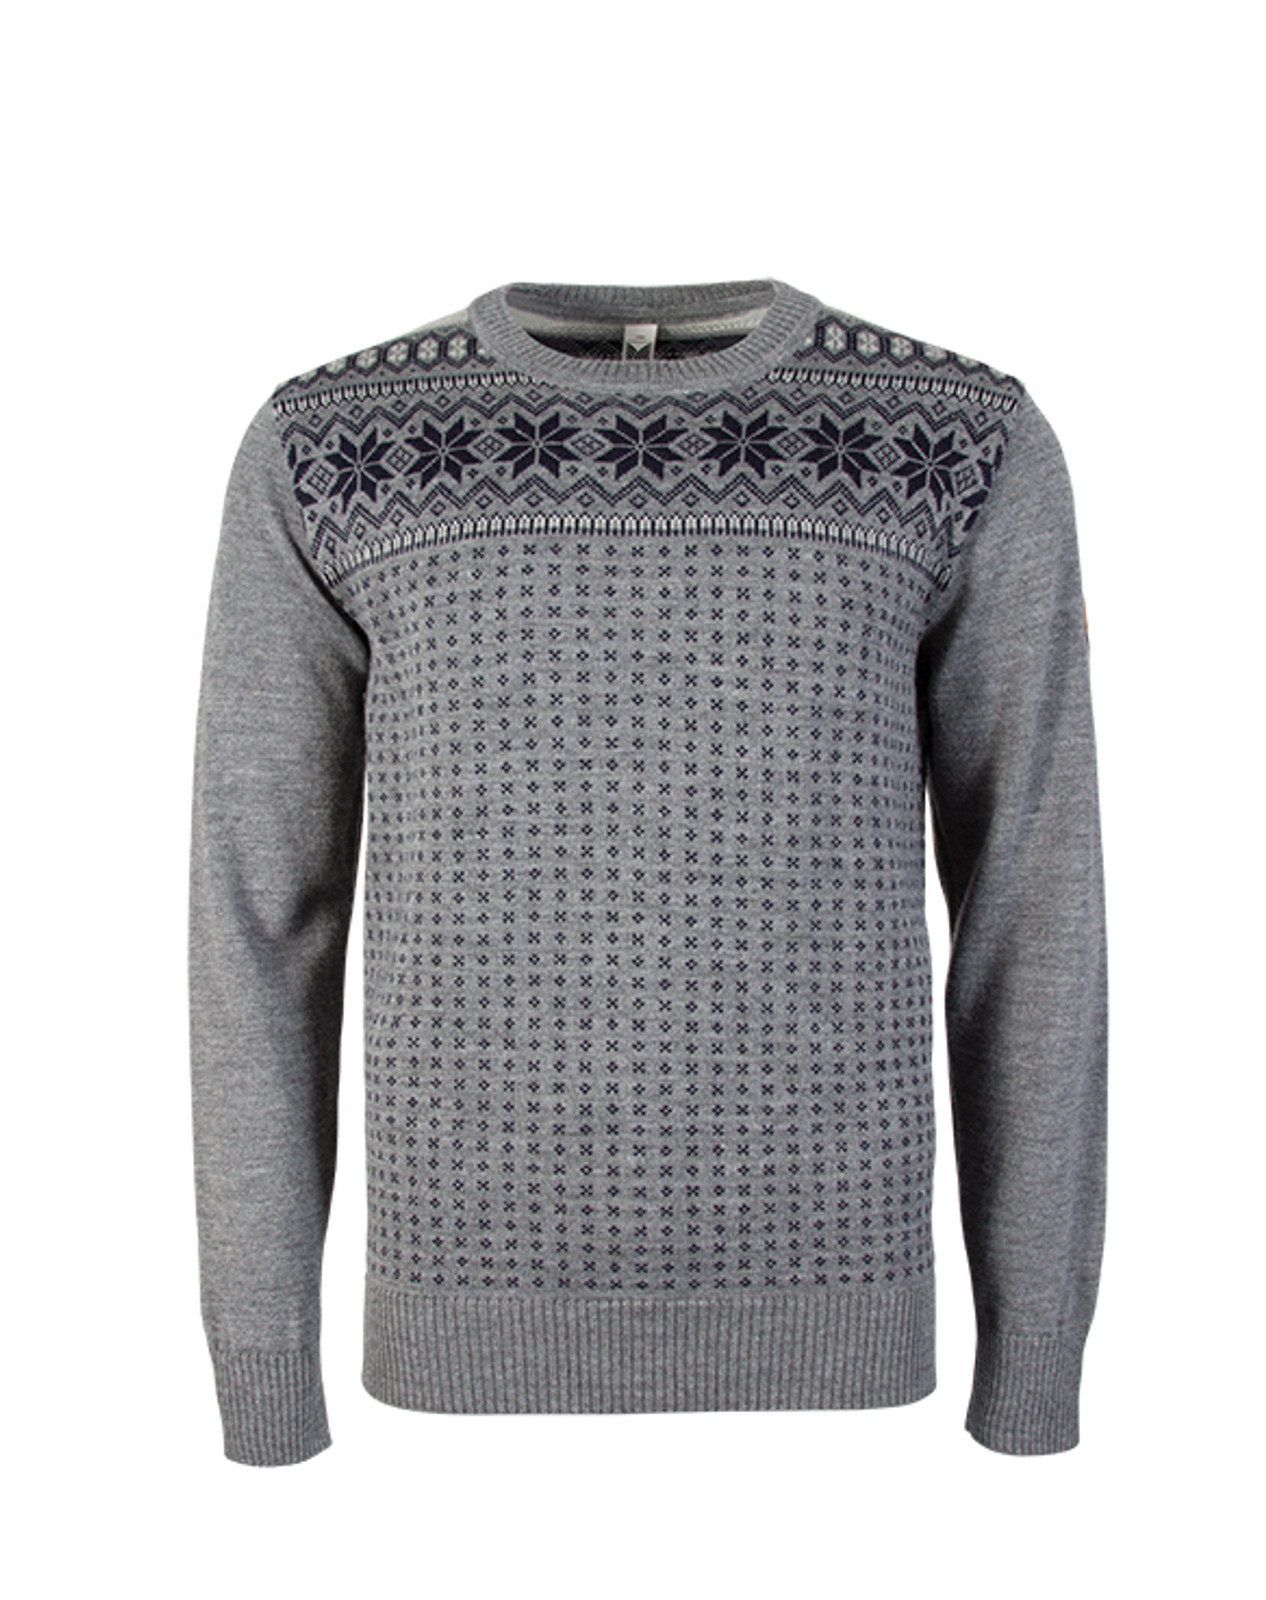 Alternate view of Dale of Norway, Garmisch Sweater, Mens, in Smoke/Navy/Light Charcoal, 92611-T